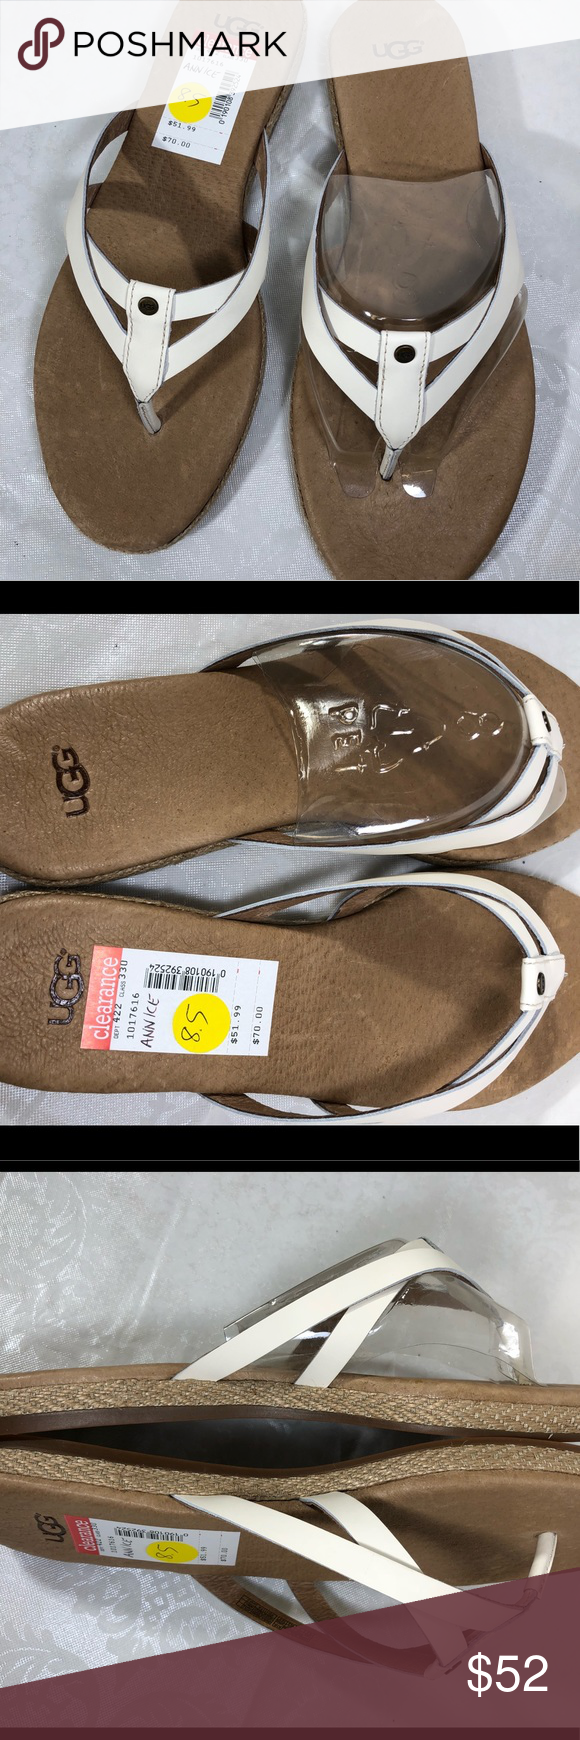 479cb797761 UGG ANNICE LEATHER JUTE SANDALS WHITE Brand New with Box